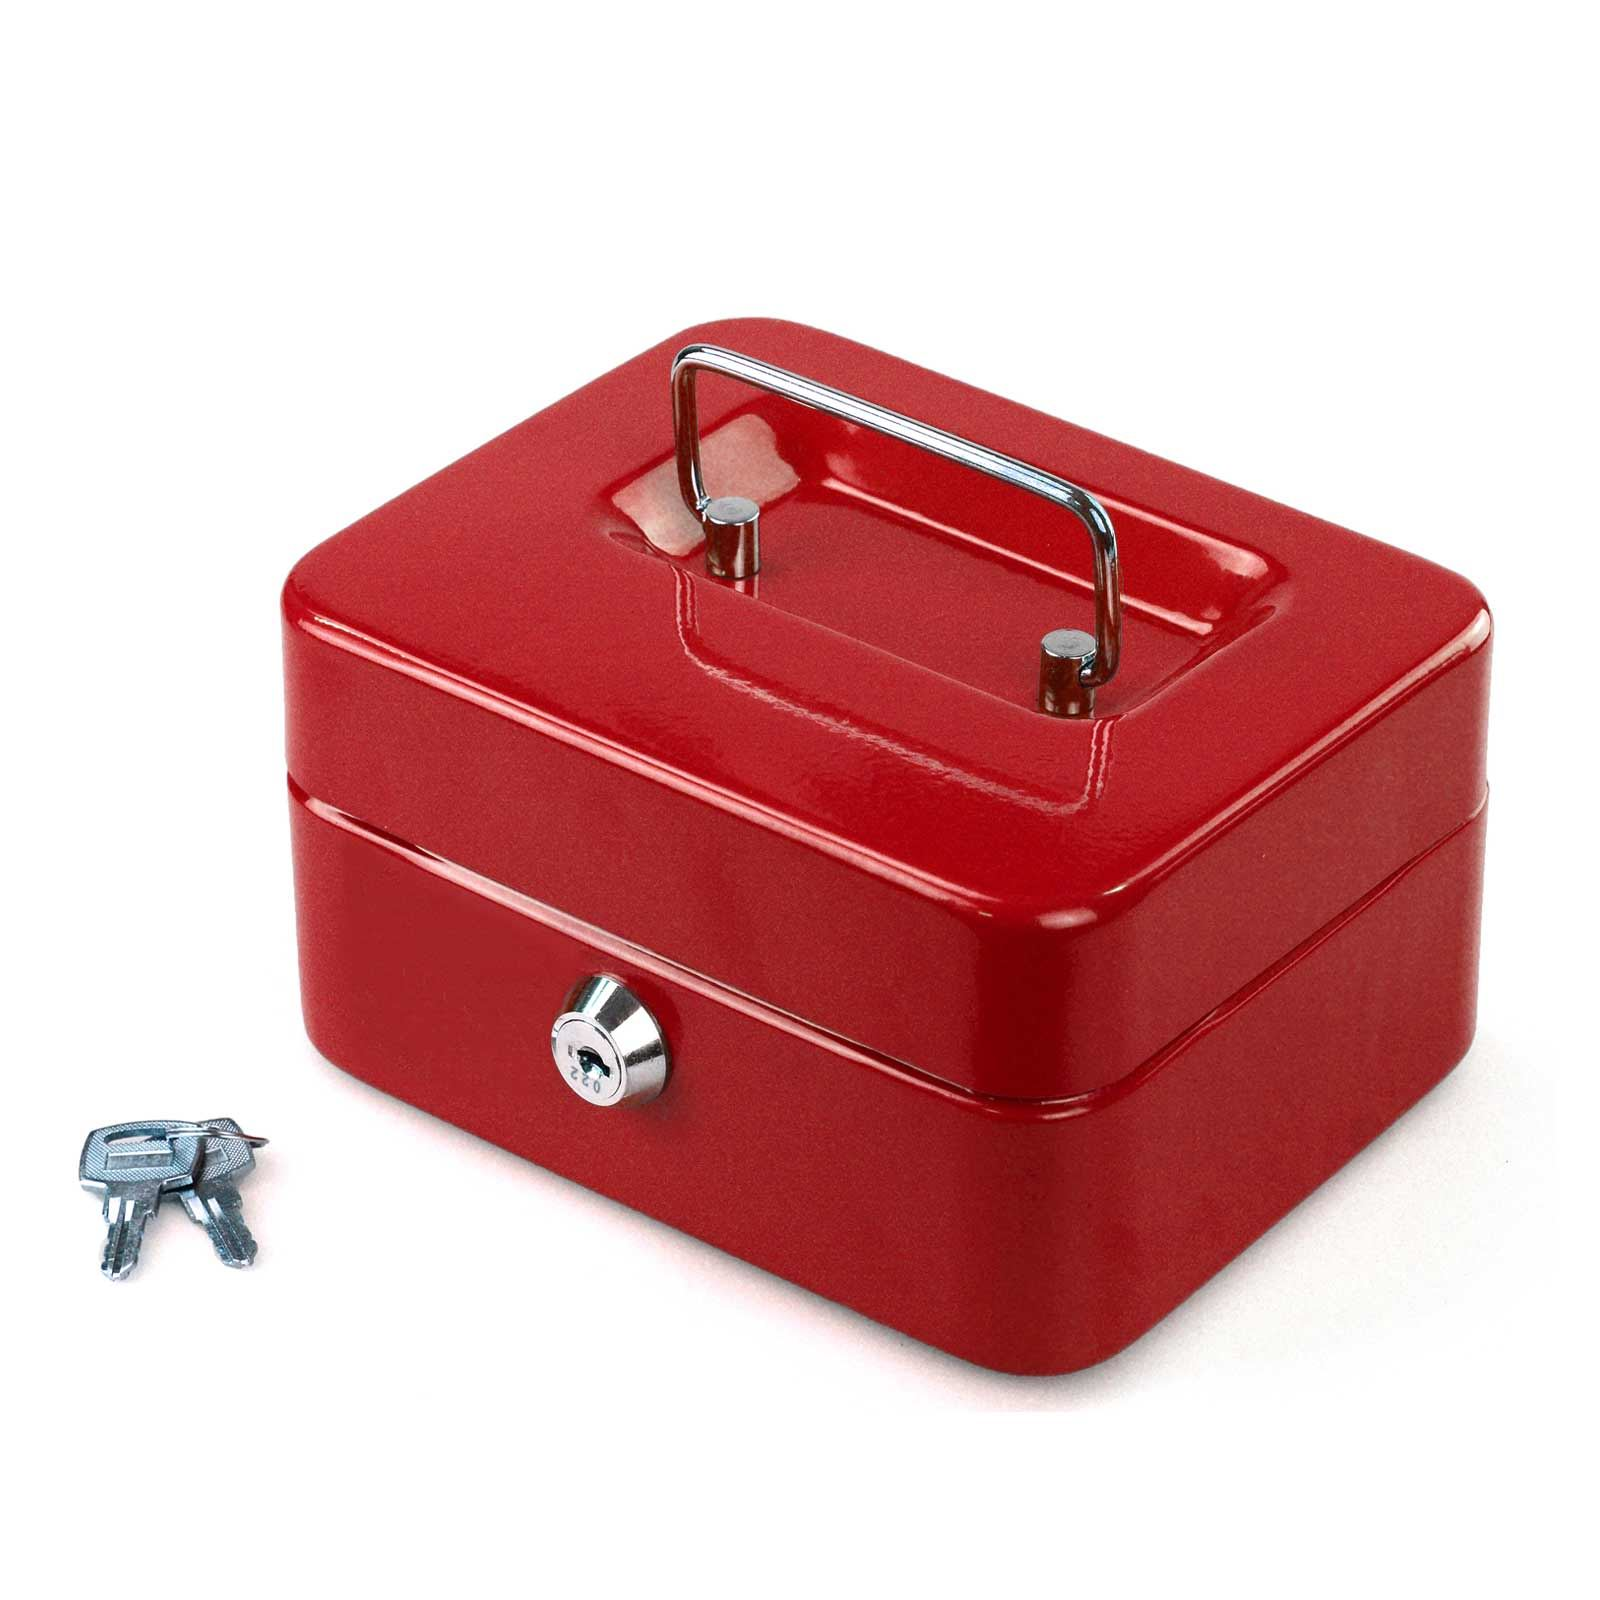 Petty-Cash-Safety-Deposit-Box-Metal-Security-Steel-Money-Bank-Coin-Tray-holder thumbnail 12